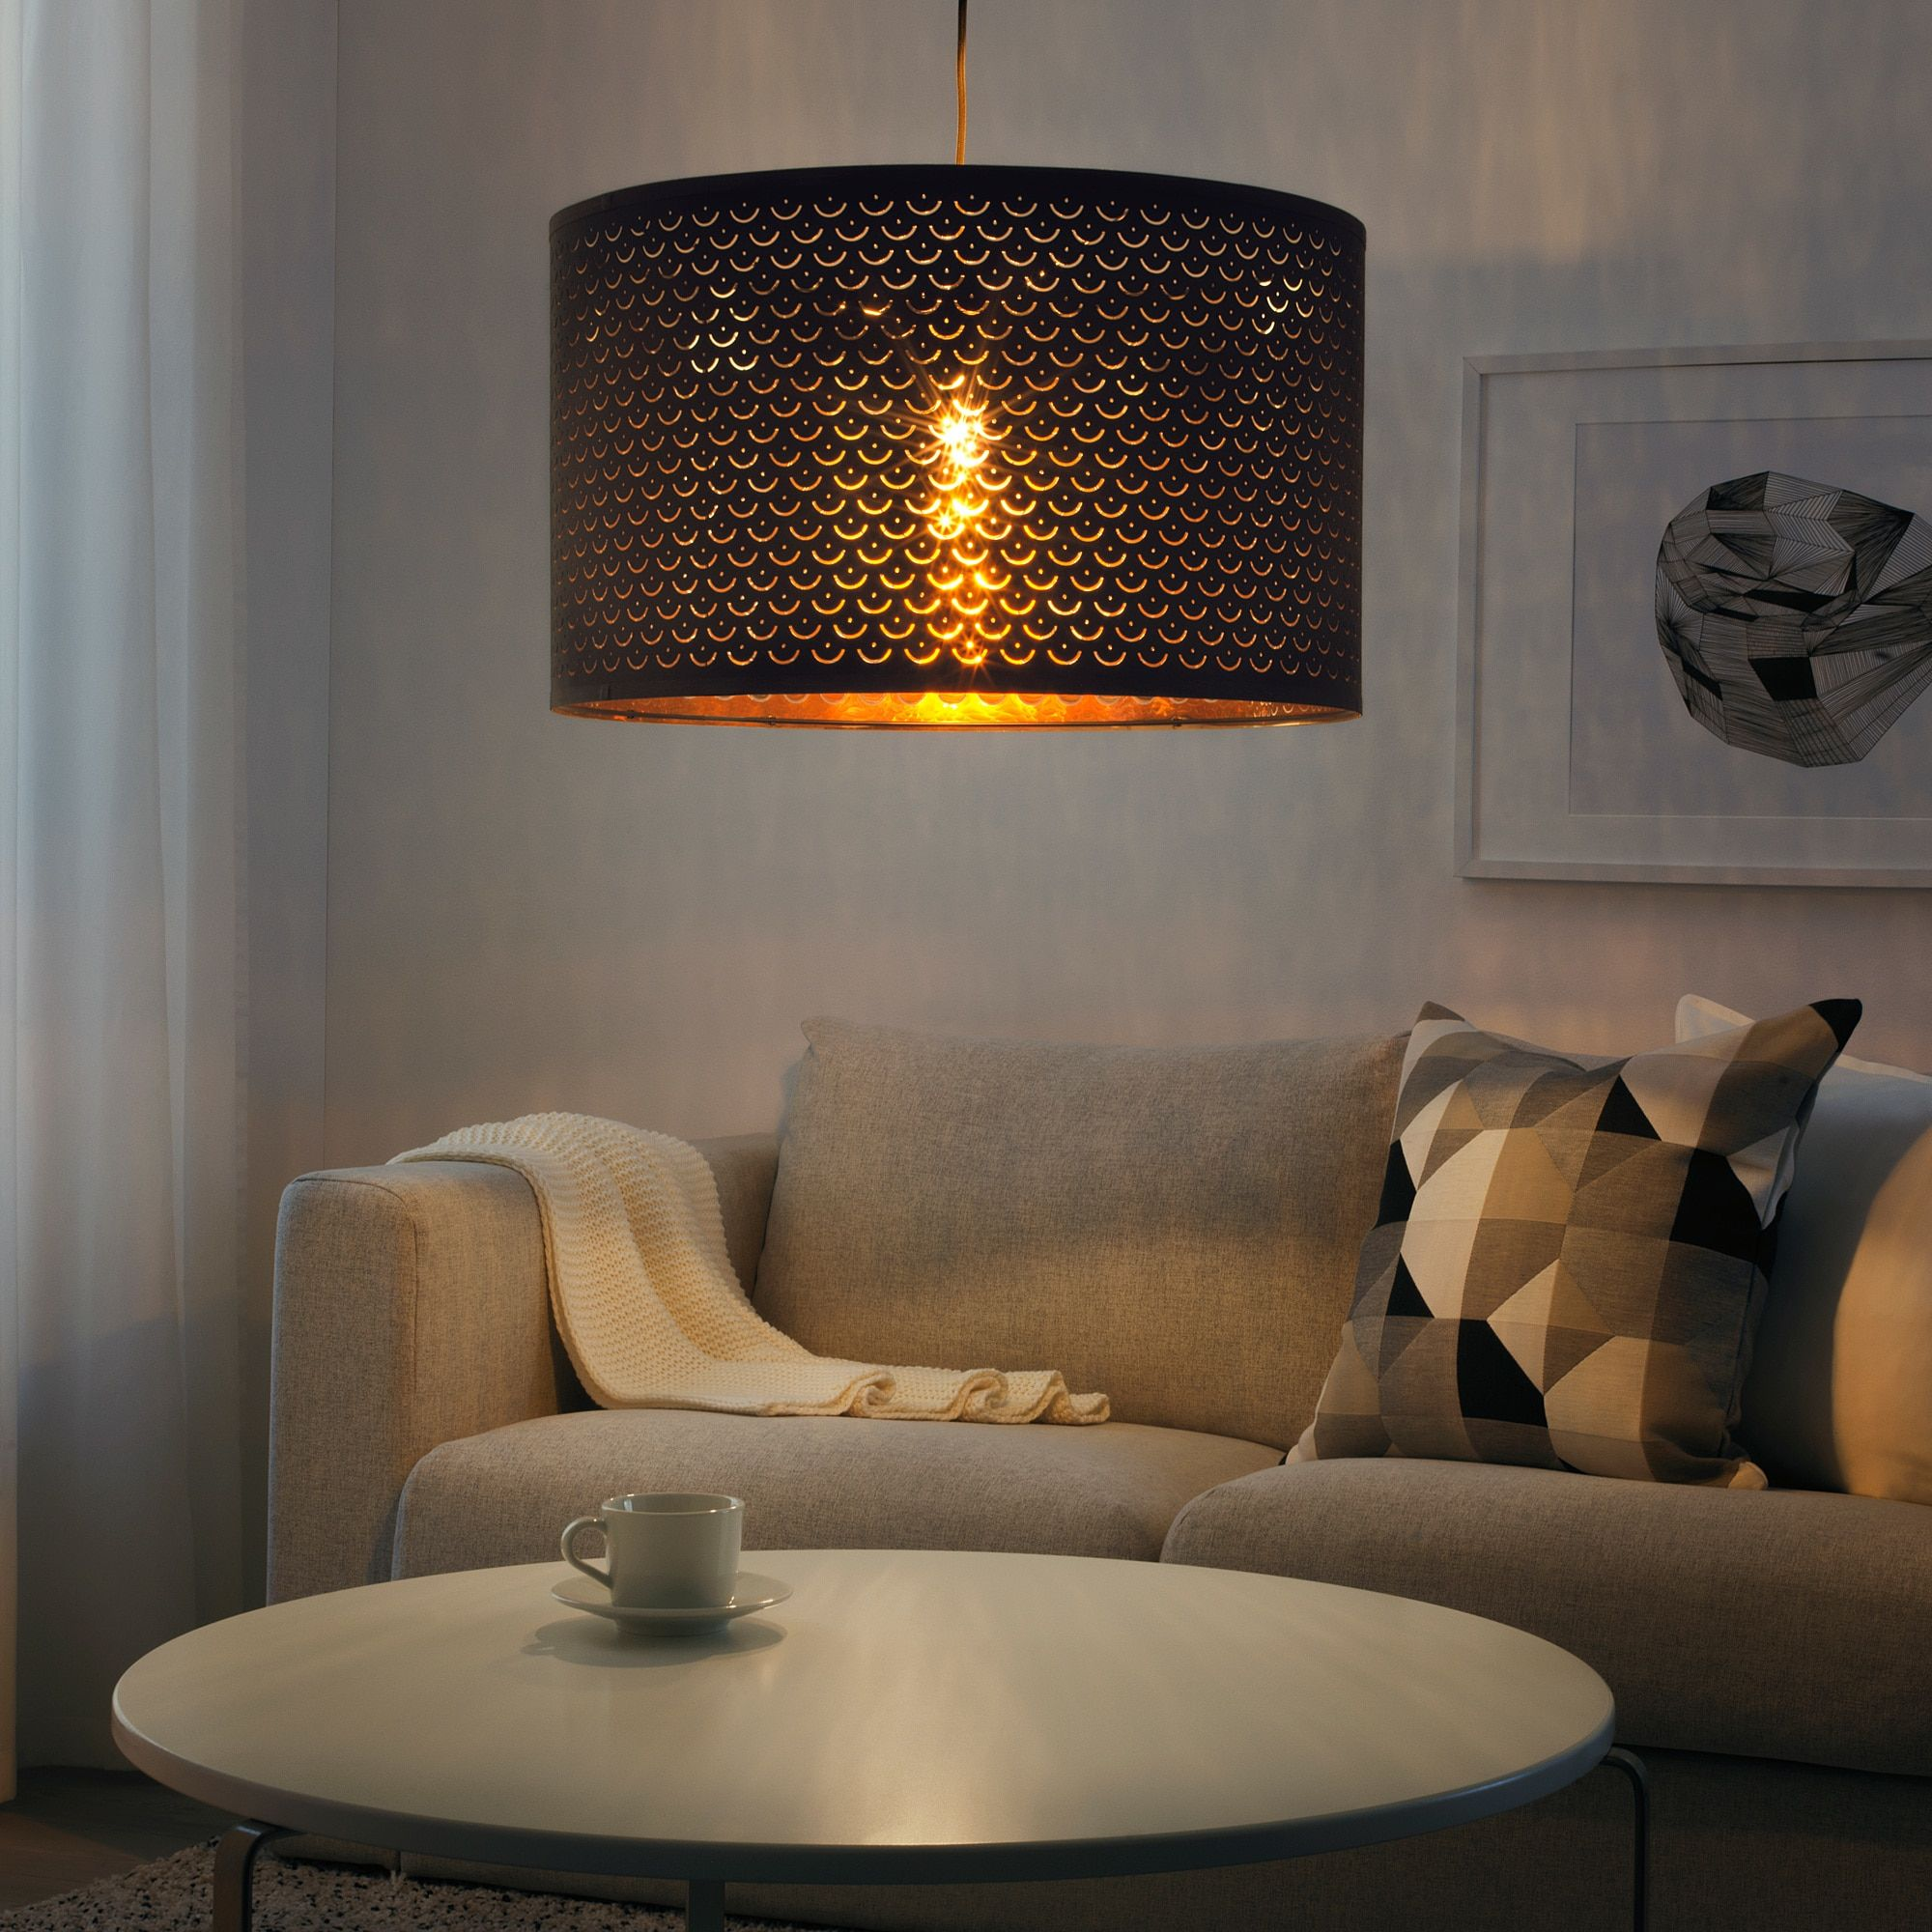 Home Outdoor Furniture Homeware Hanglamp Thuisdecoratie Ikea Inspiratie